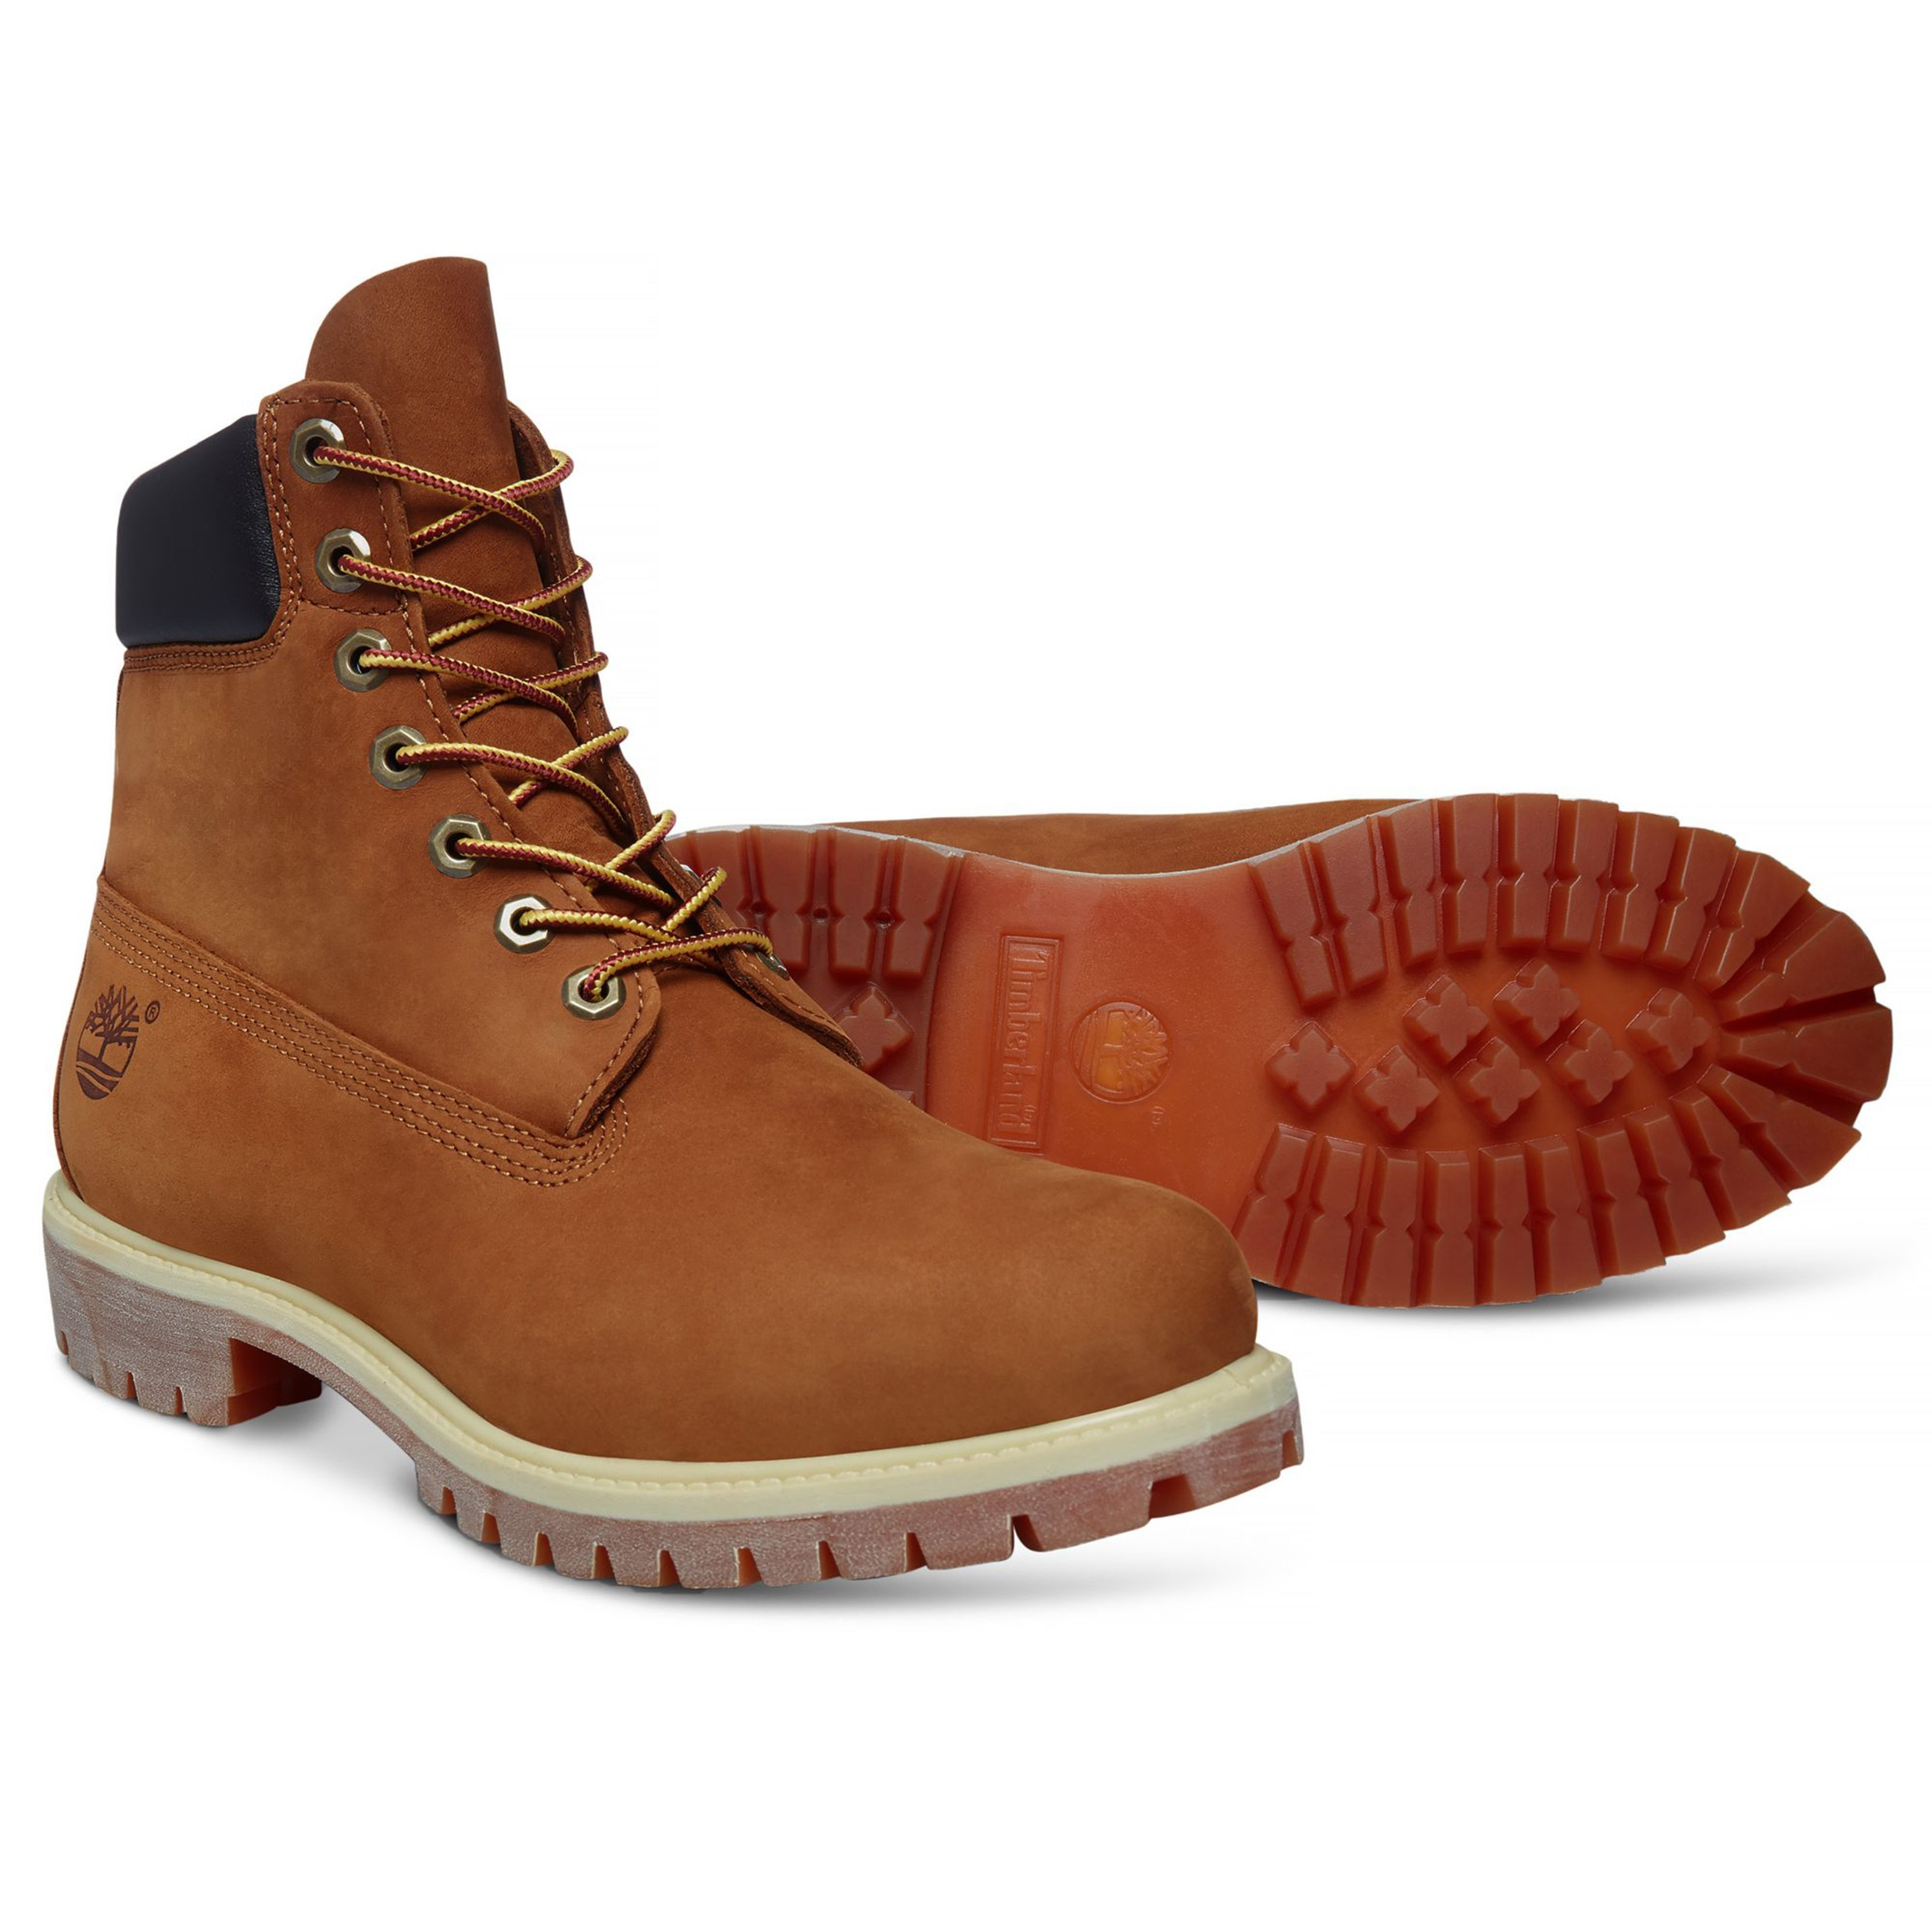 9297a26a5 Timberland Mens Premium 6 Inch Leather High Boots Boots Rust Orange | Jean  Scene